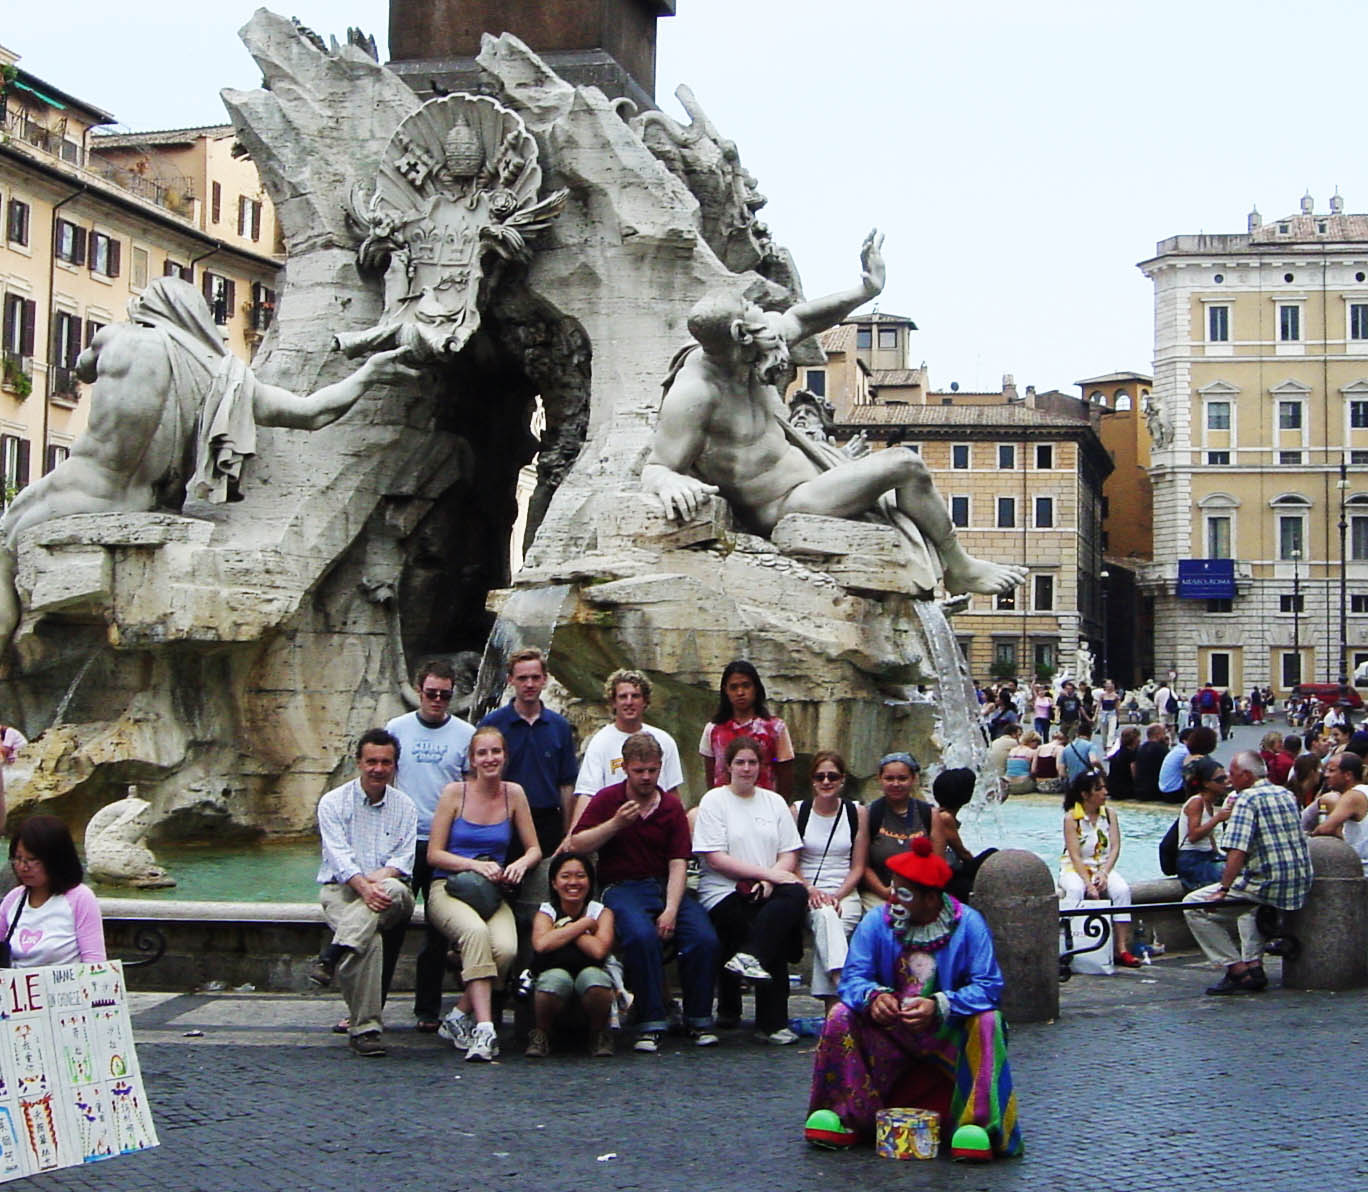 Rome, Pz. Navona - Fountain of the Four Rivers